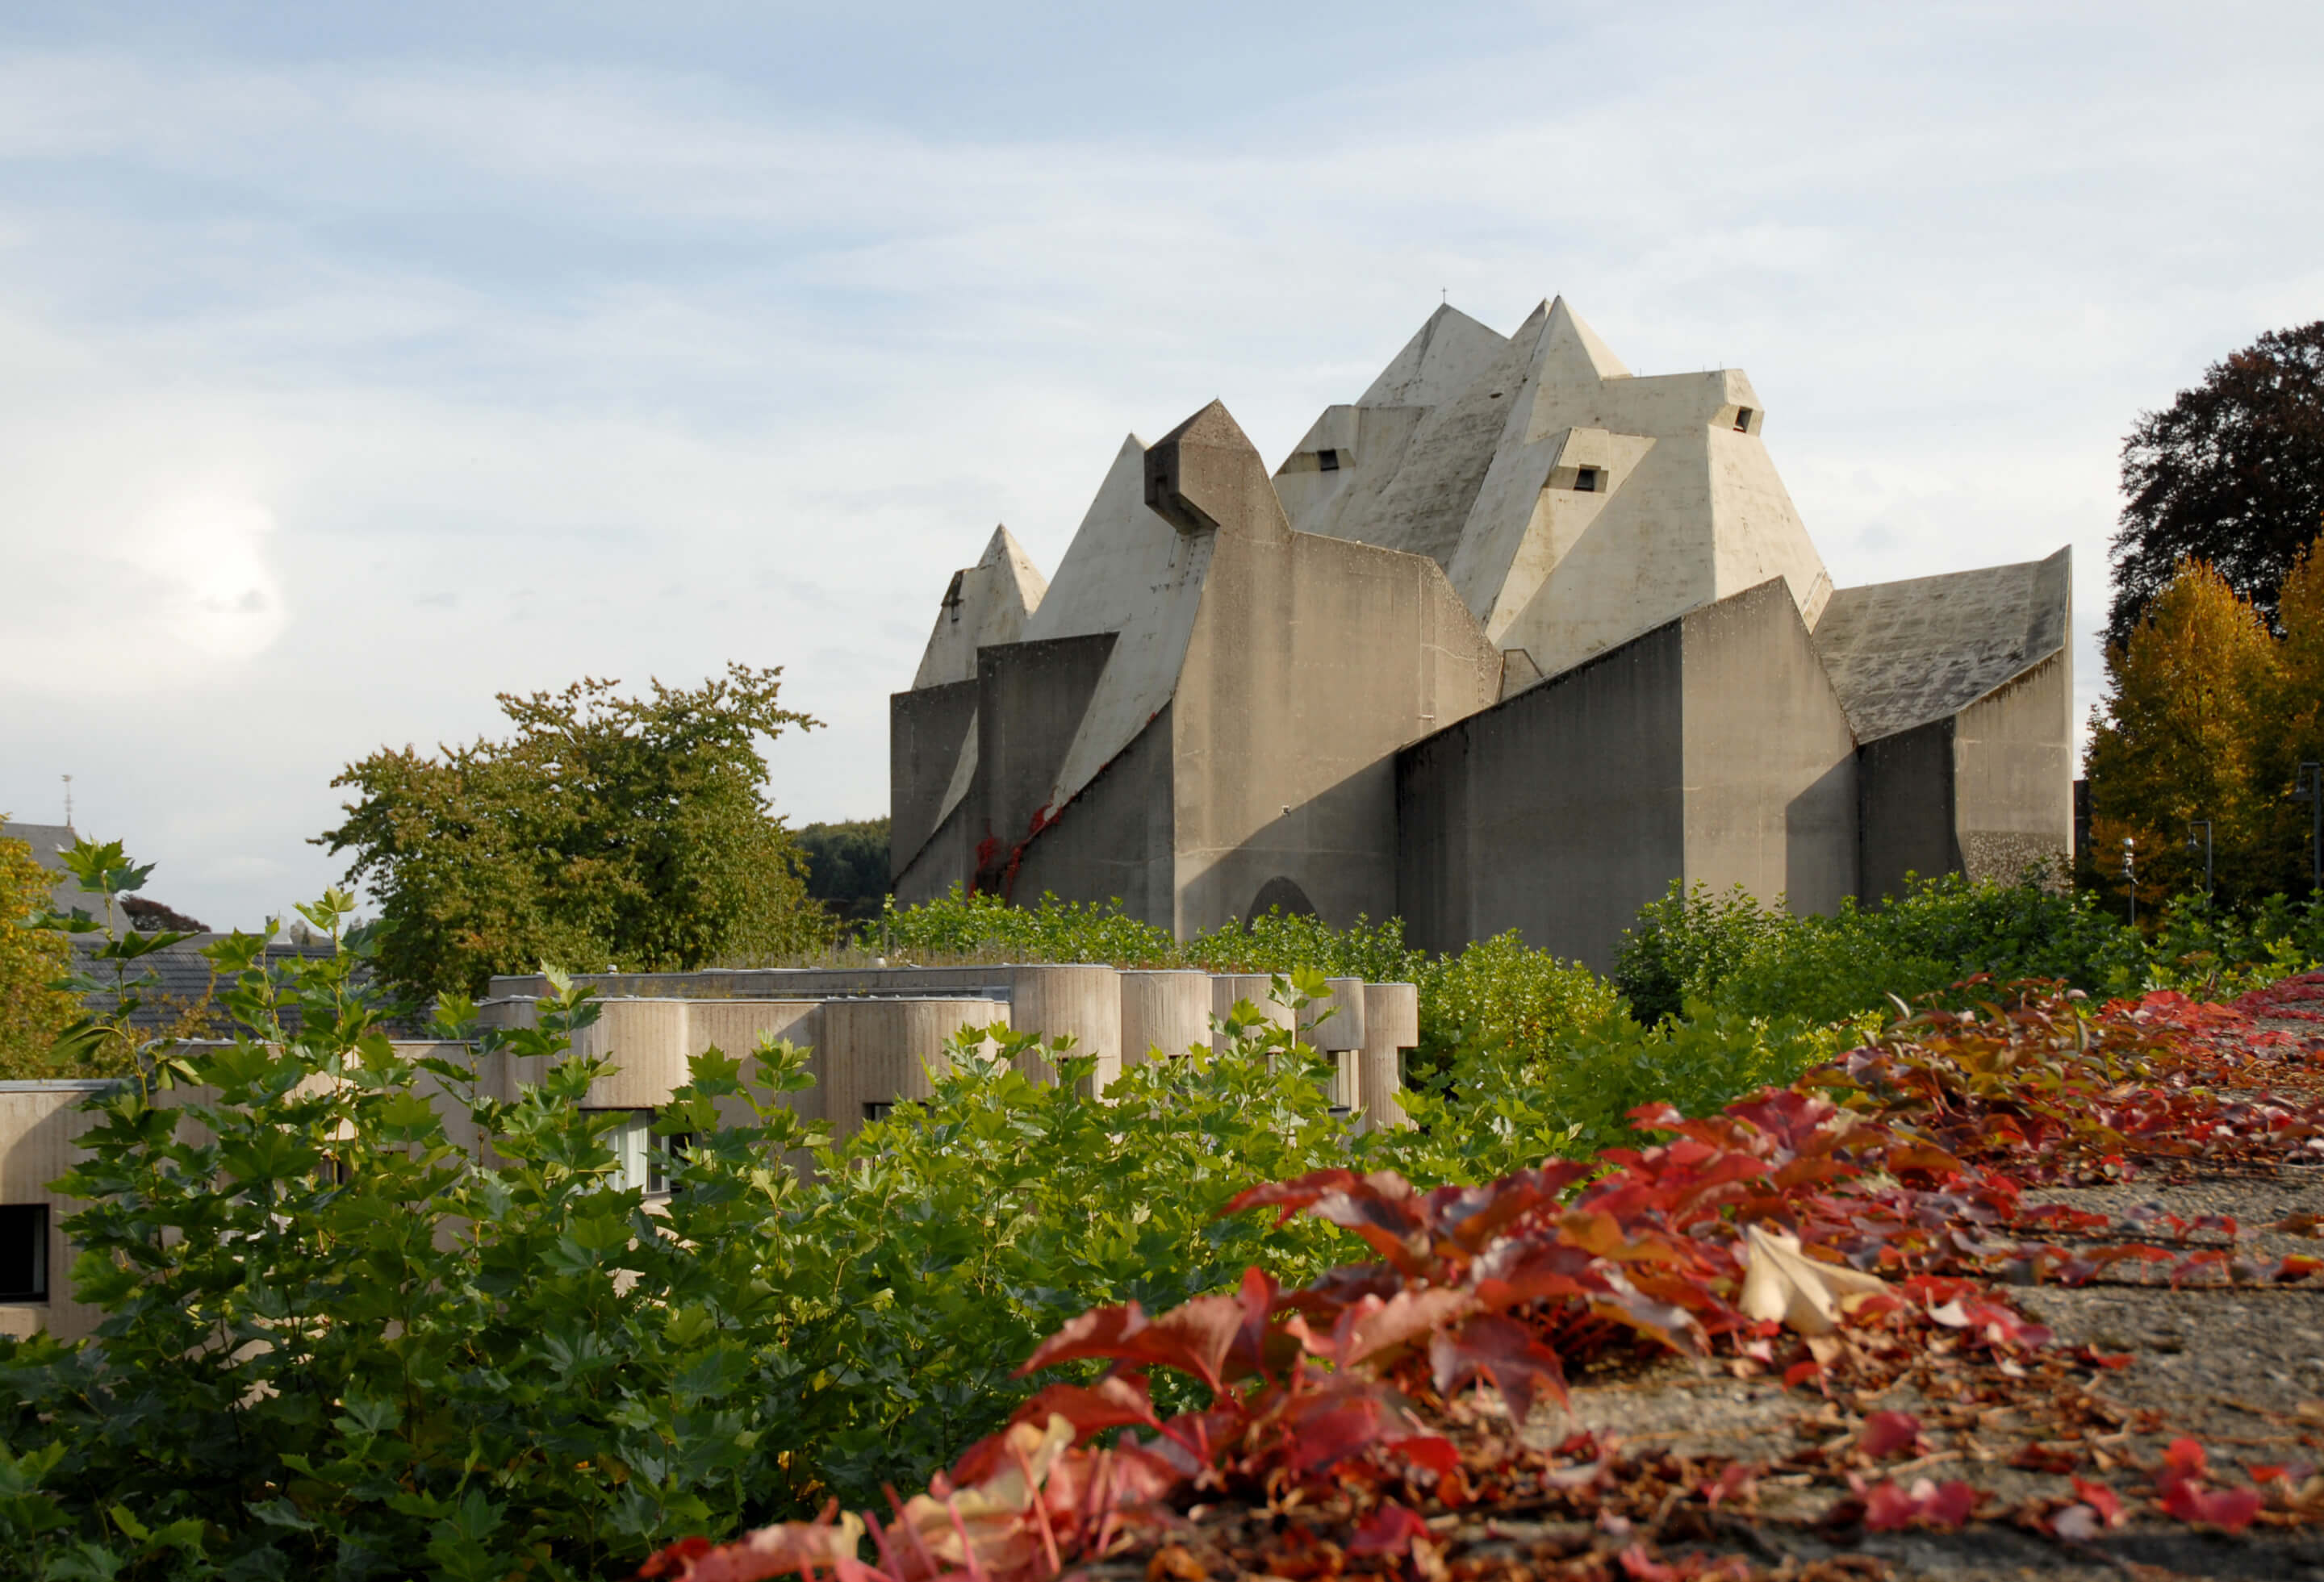 view of an angular concrete church with flowers in the foreground